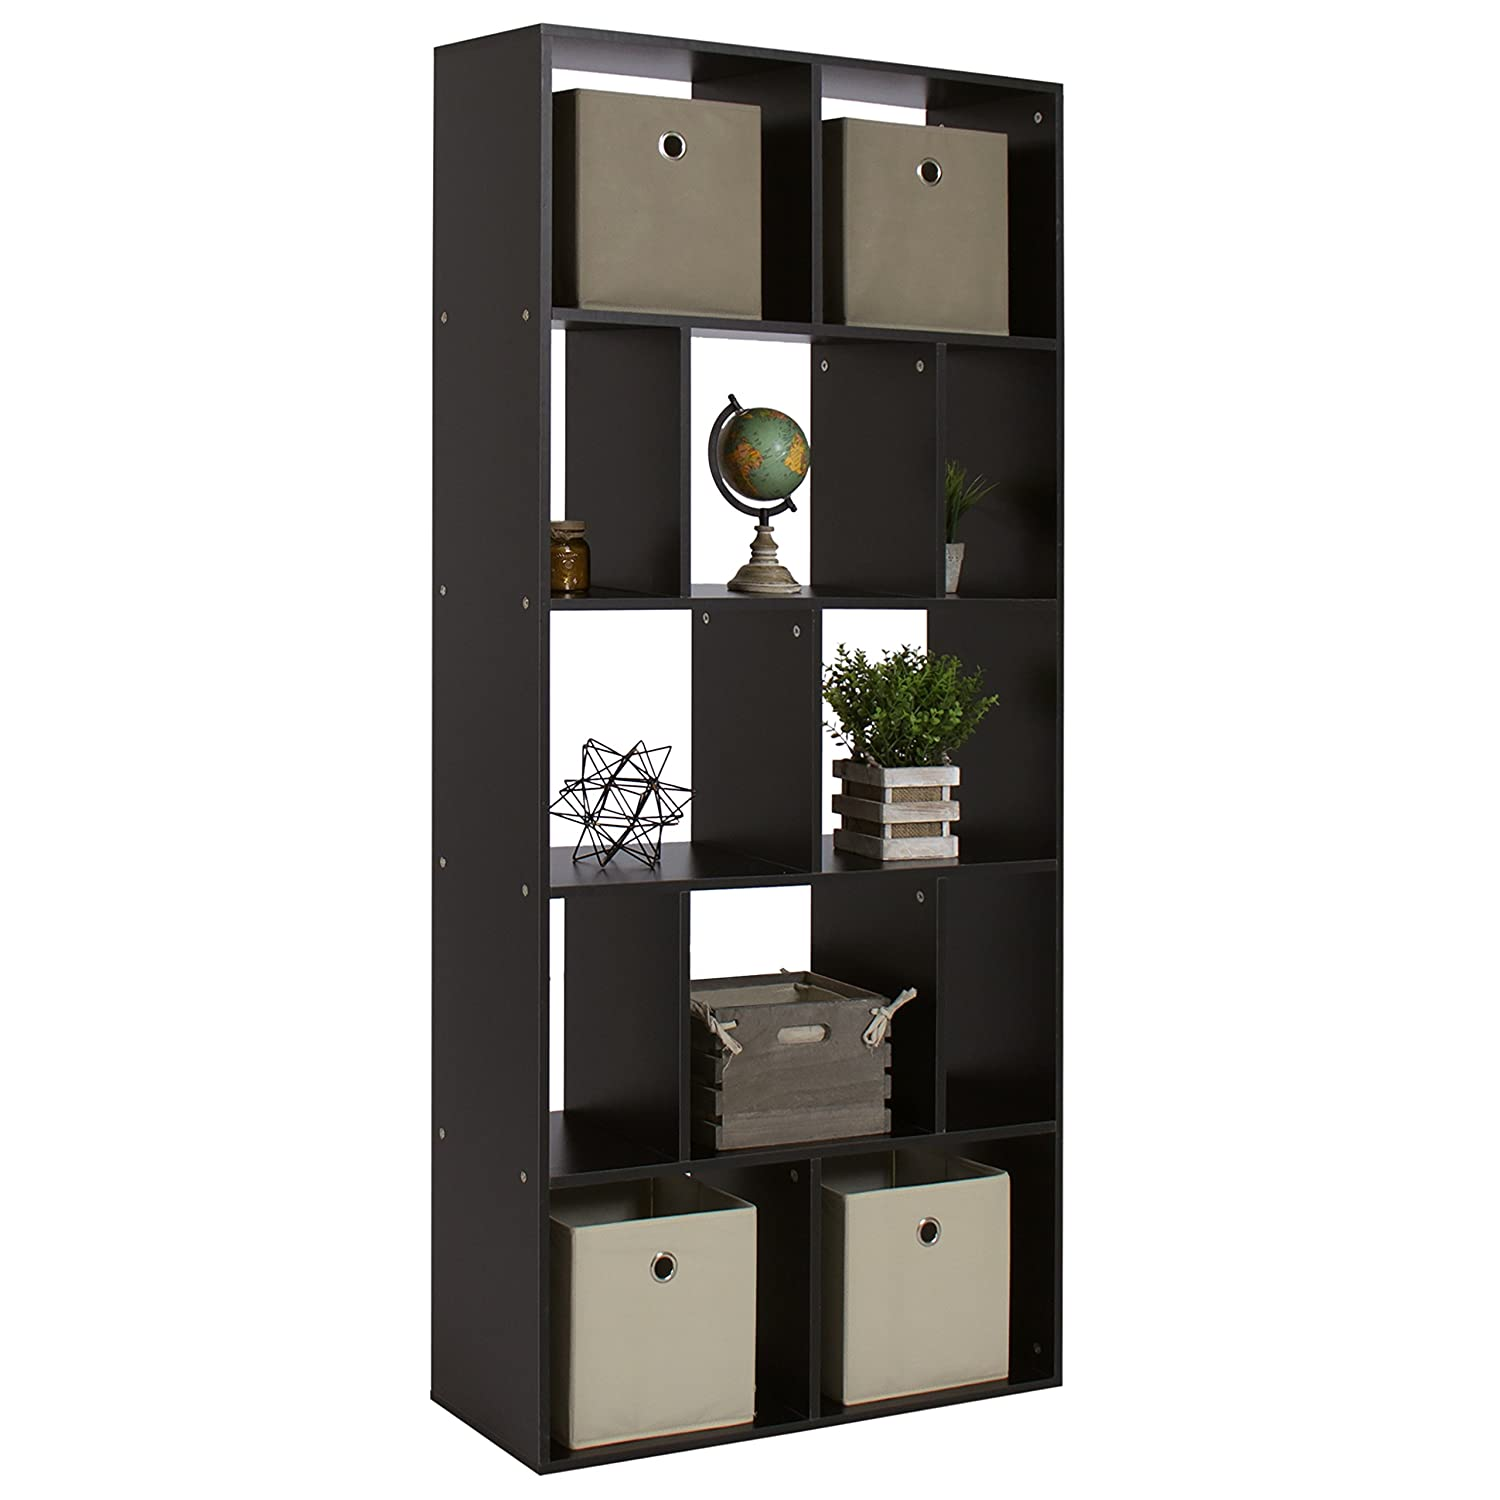 Cosmic furniture home office dinning area living room bedroom contemporary modern bookcase еlegant storage space twelve shelf cube and modular design